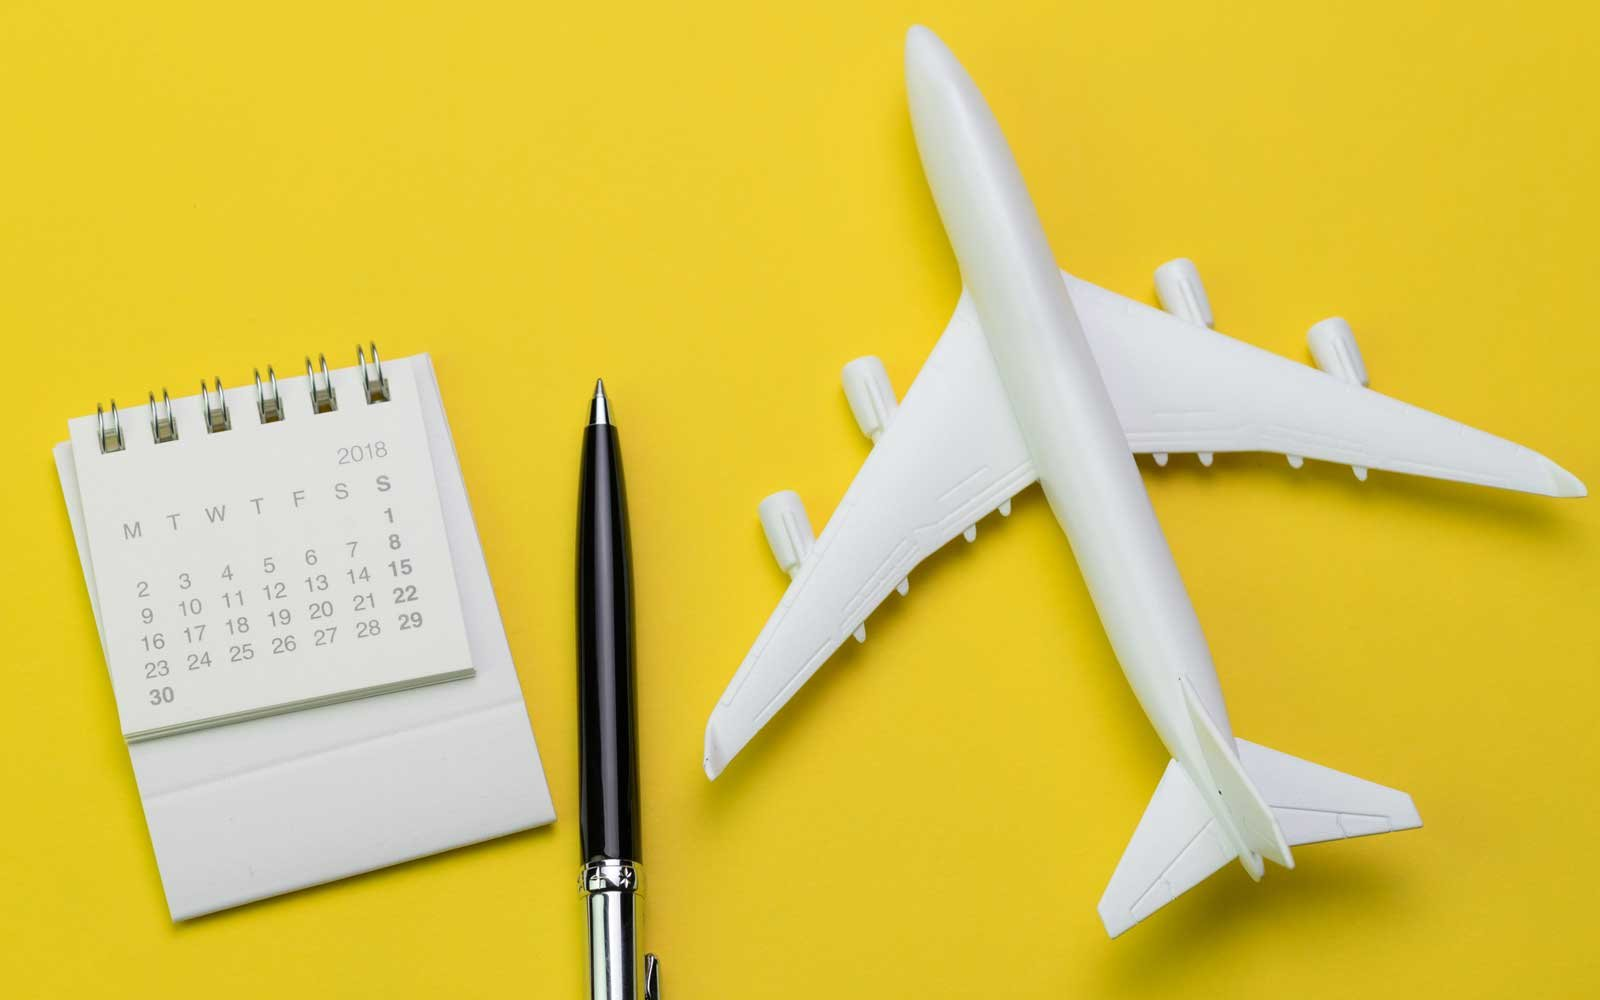 Still Life Of 2018 Calendar Pen And Toy Plane On Sunny Yellow Background